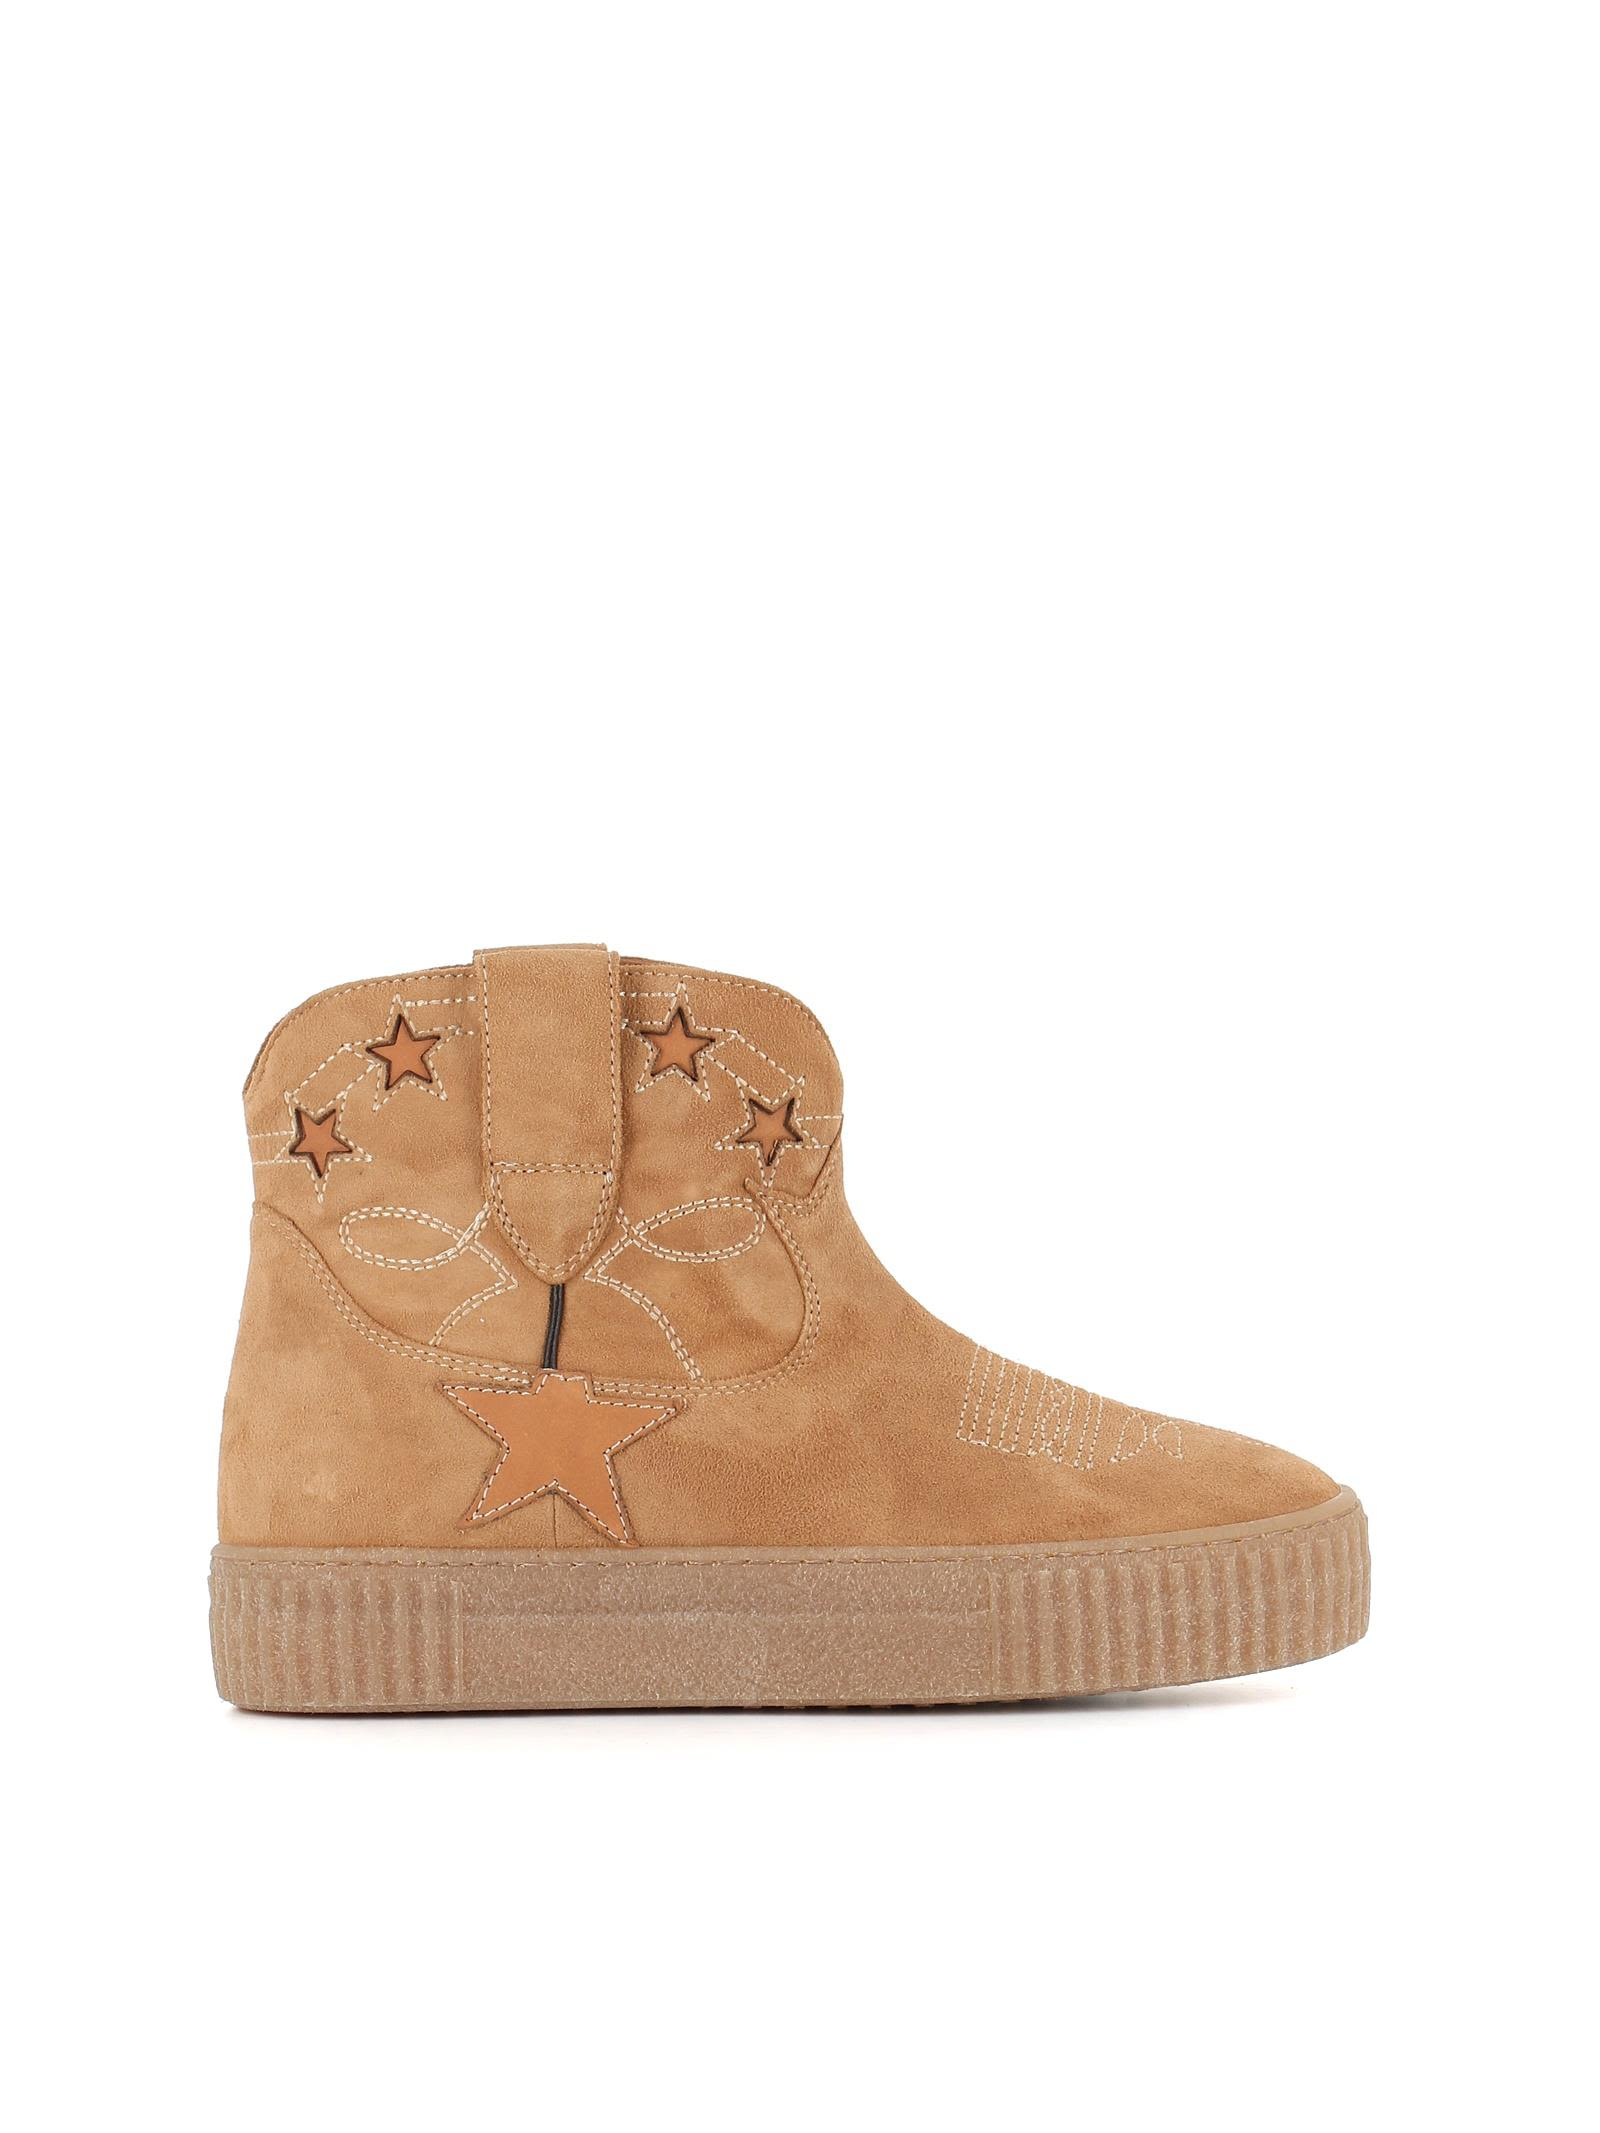 Star Ankle Boots in Beige